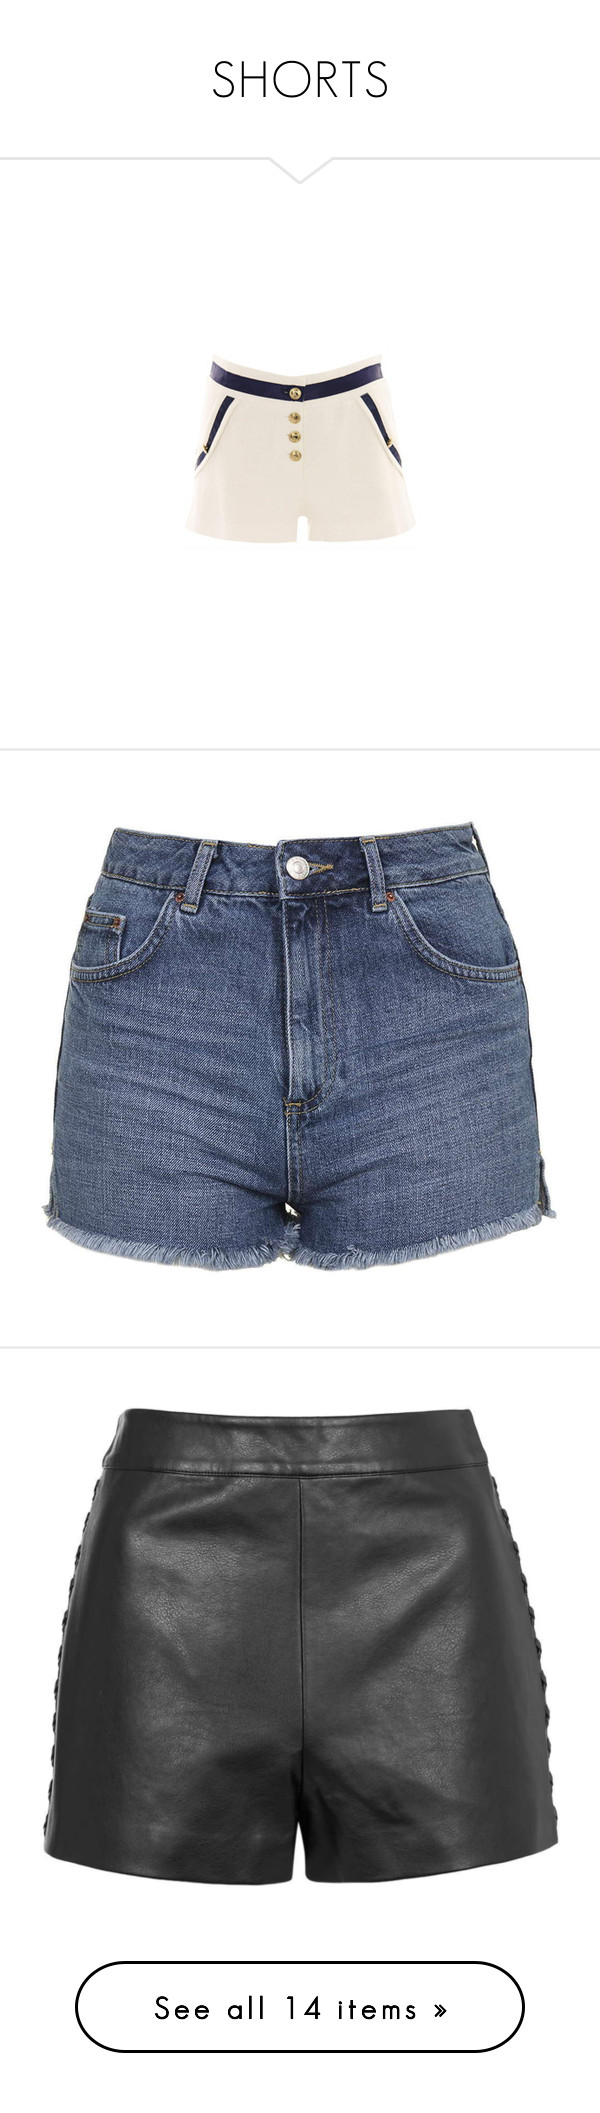 """""""SHORTS"""" by macopa ❤ liked on Polyvore featuring shorts, bottoms, pants, short, шорты, topshop, mid stone, highwaist shorts, high-waisted shorts and vintage shorts"""